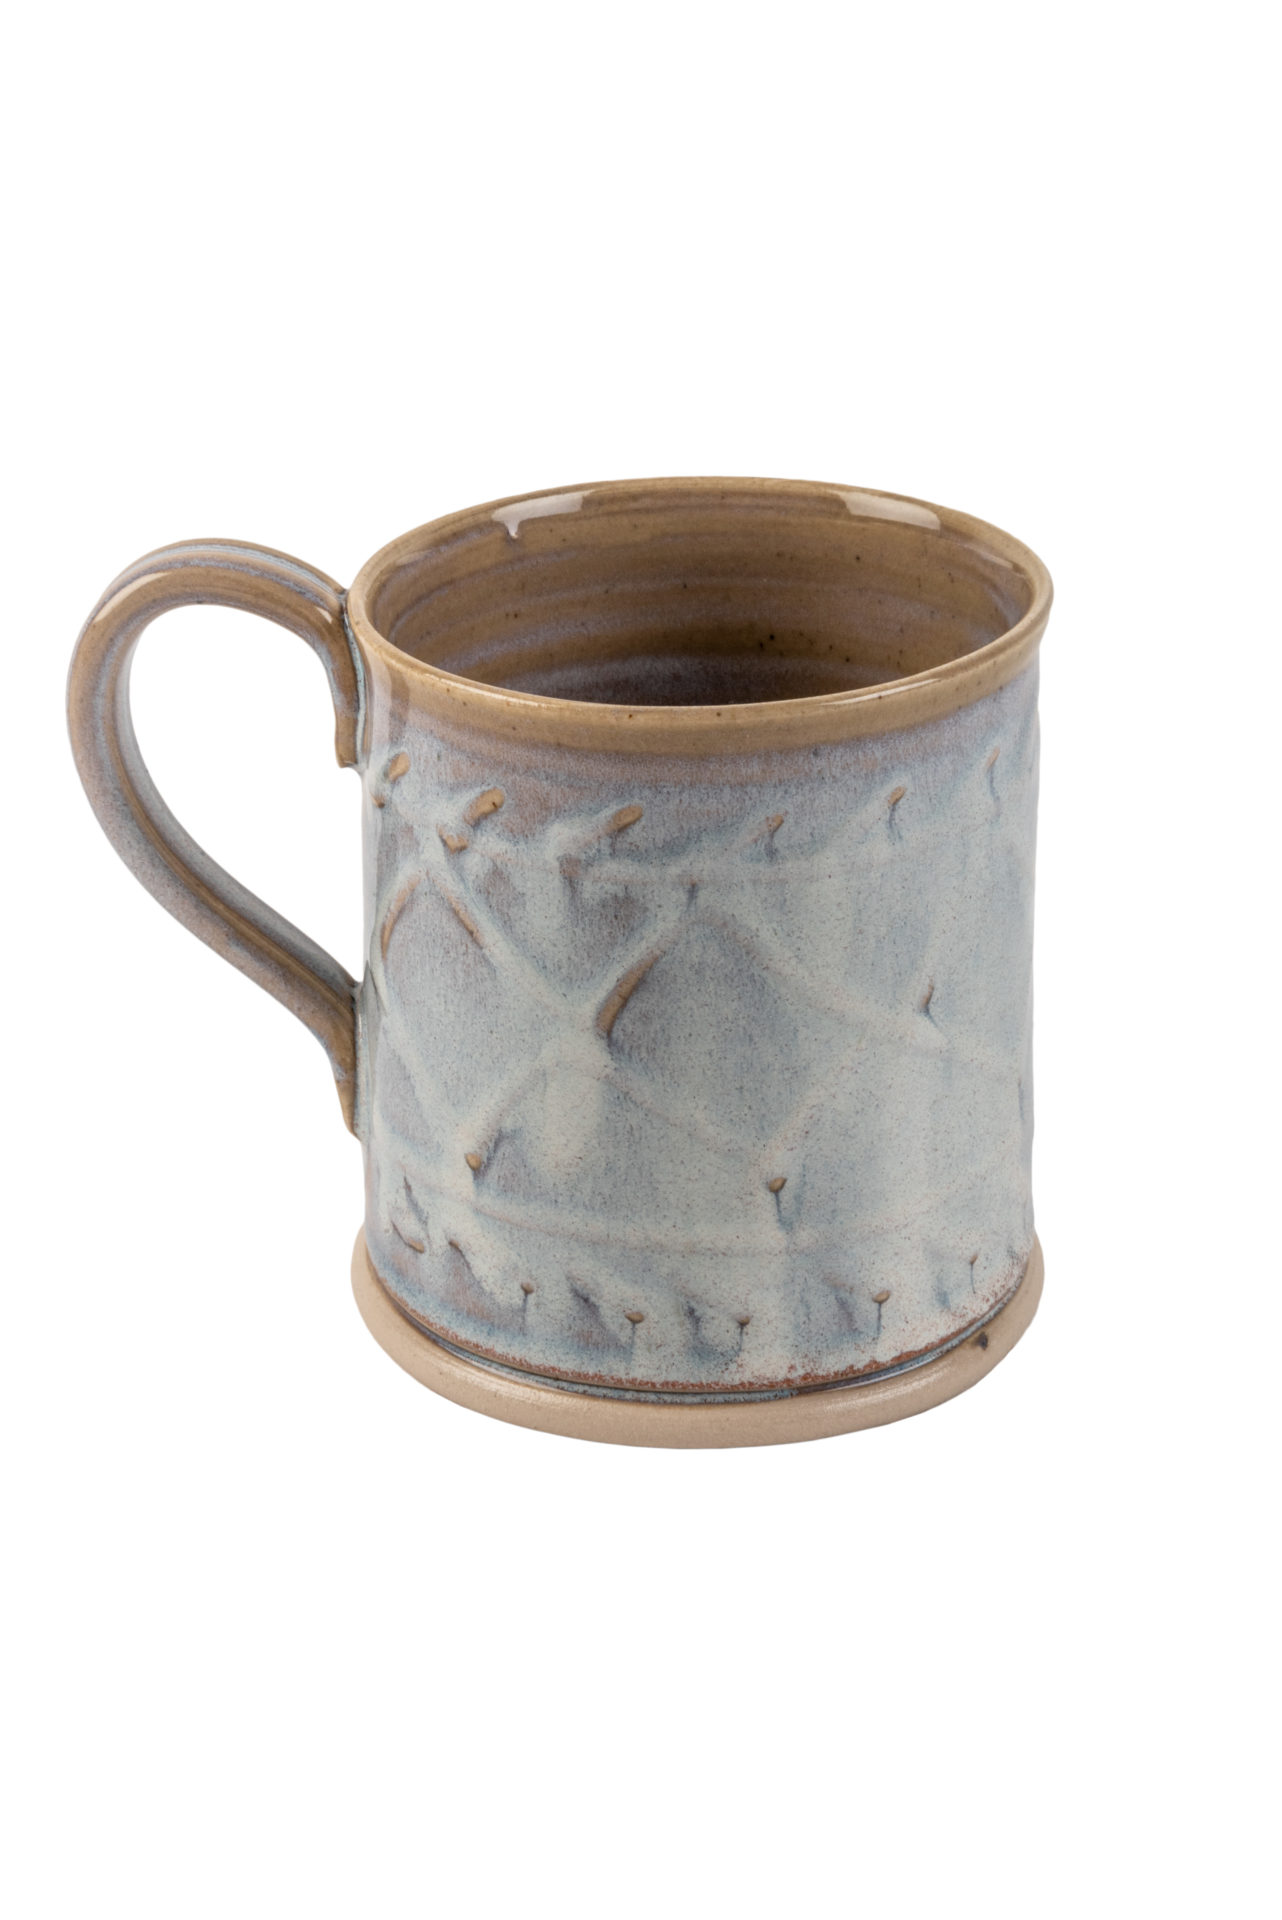 The Aran Stitch Pottery Mug Great English Outdoors